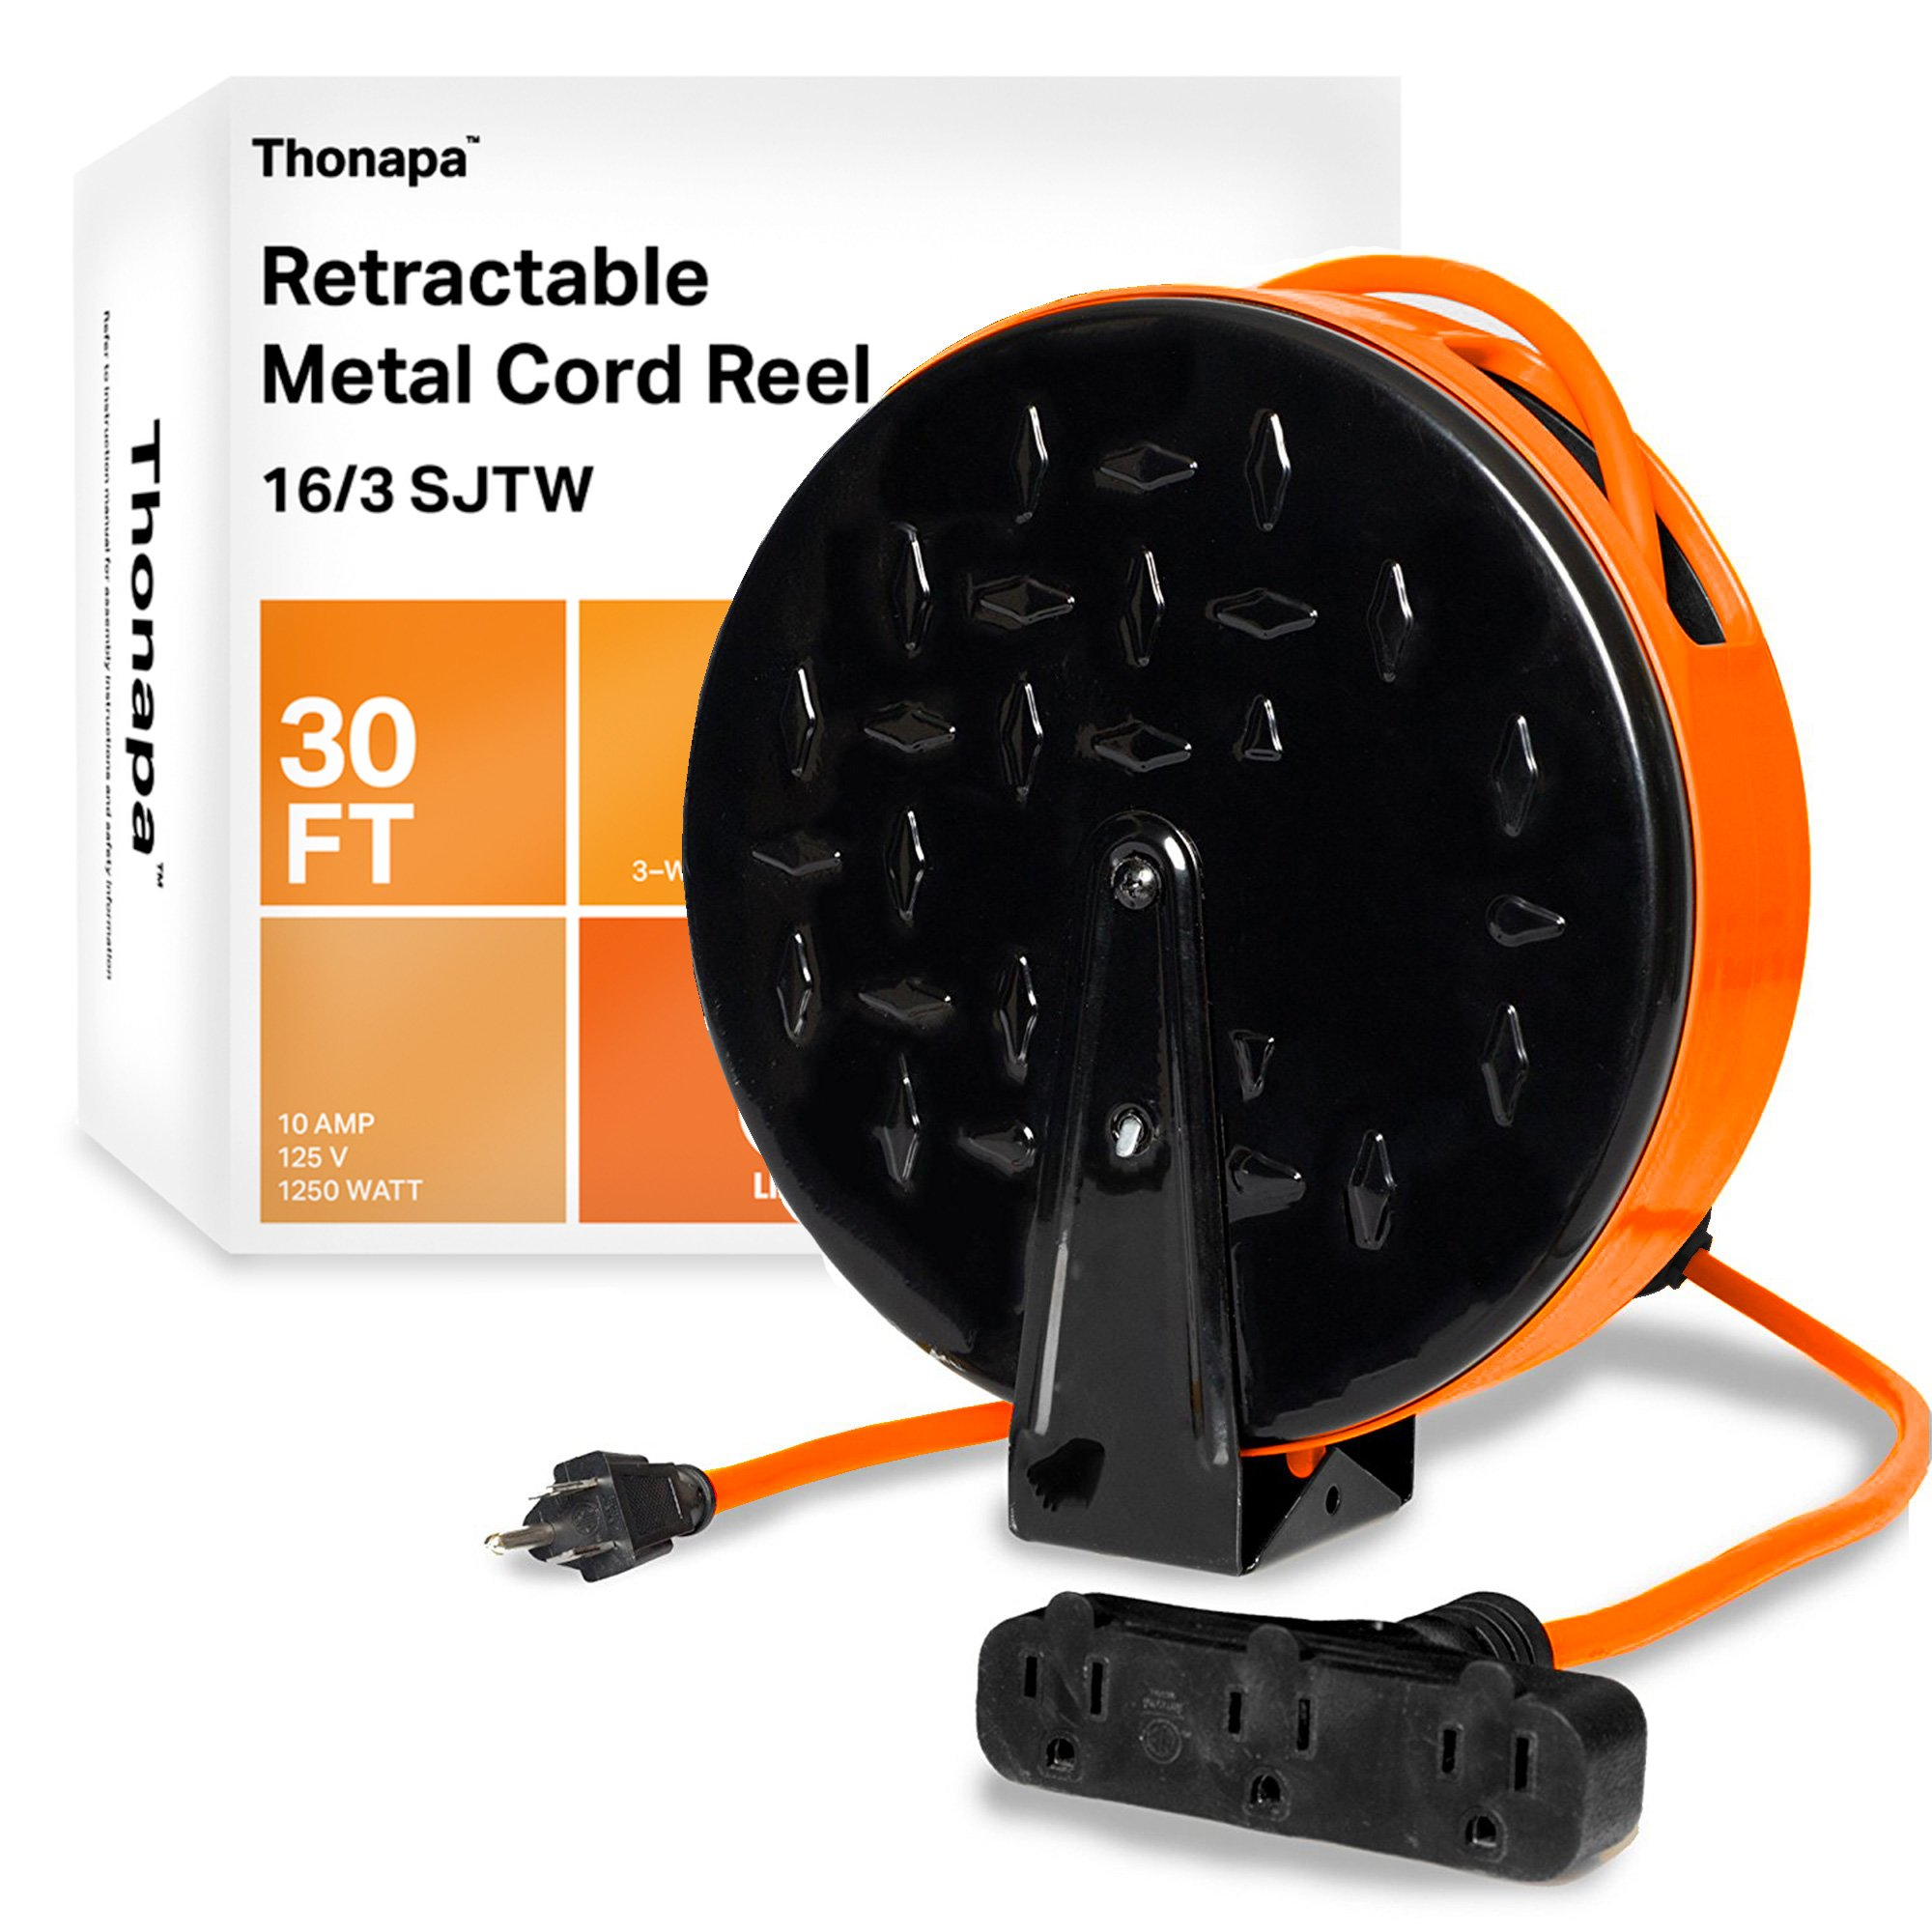 Thonapa 30 Ft Retractable Extension Cord Reel with 3 Electrical Power Outlets - 16/3 SJTW Durable Orange Cable - Perfect for Hanging from Your Garage Ceiling